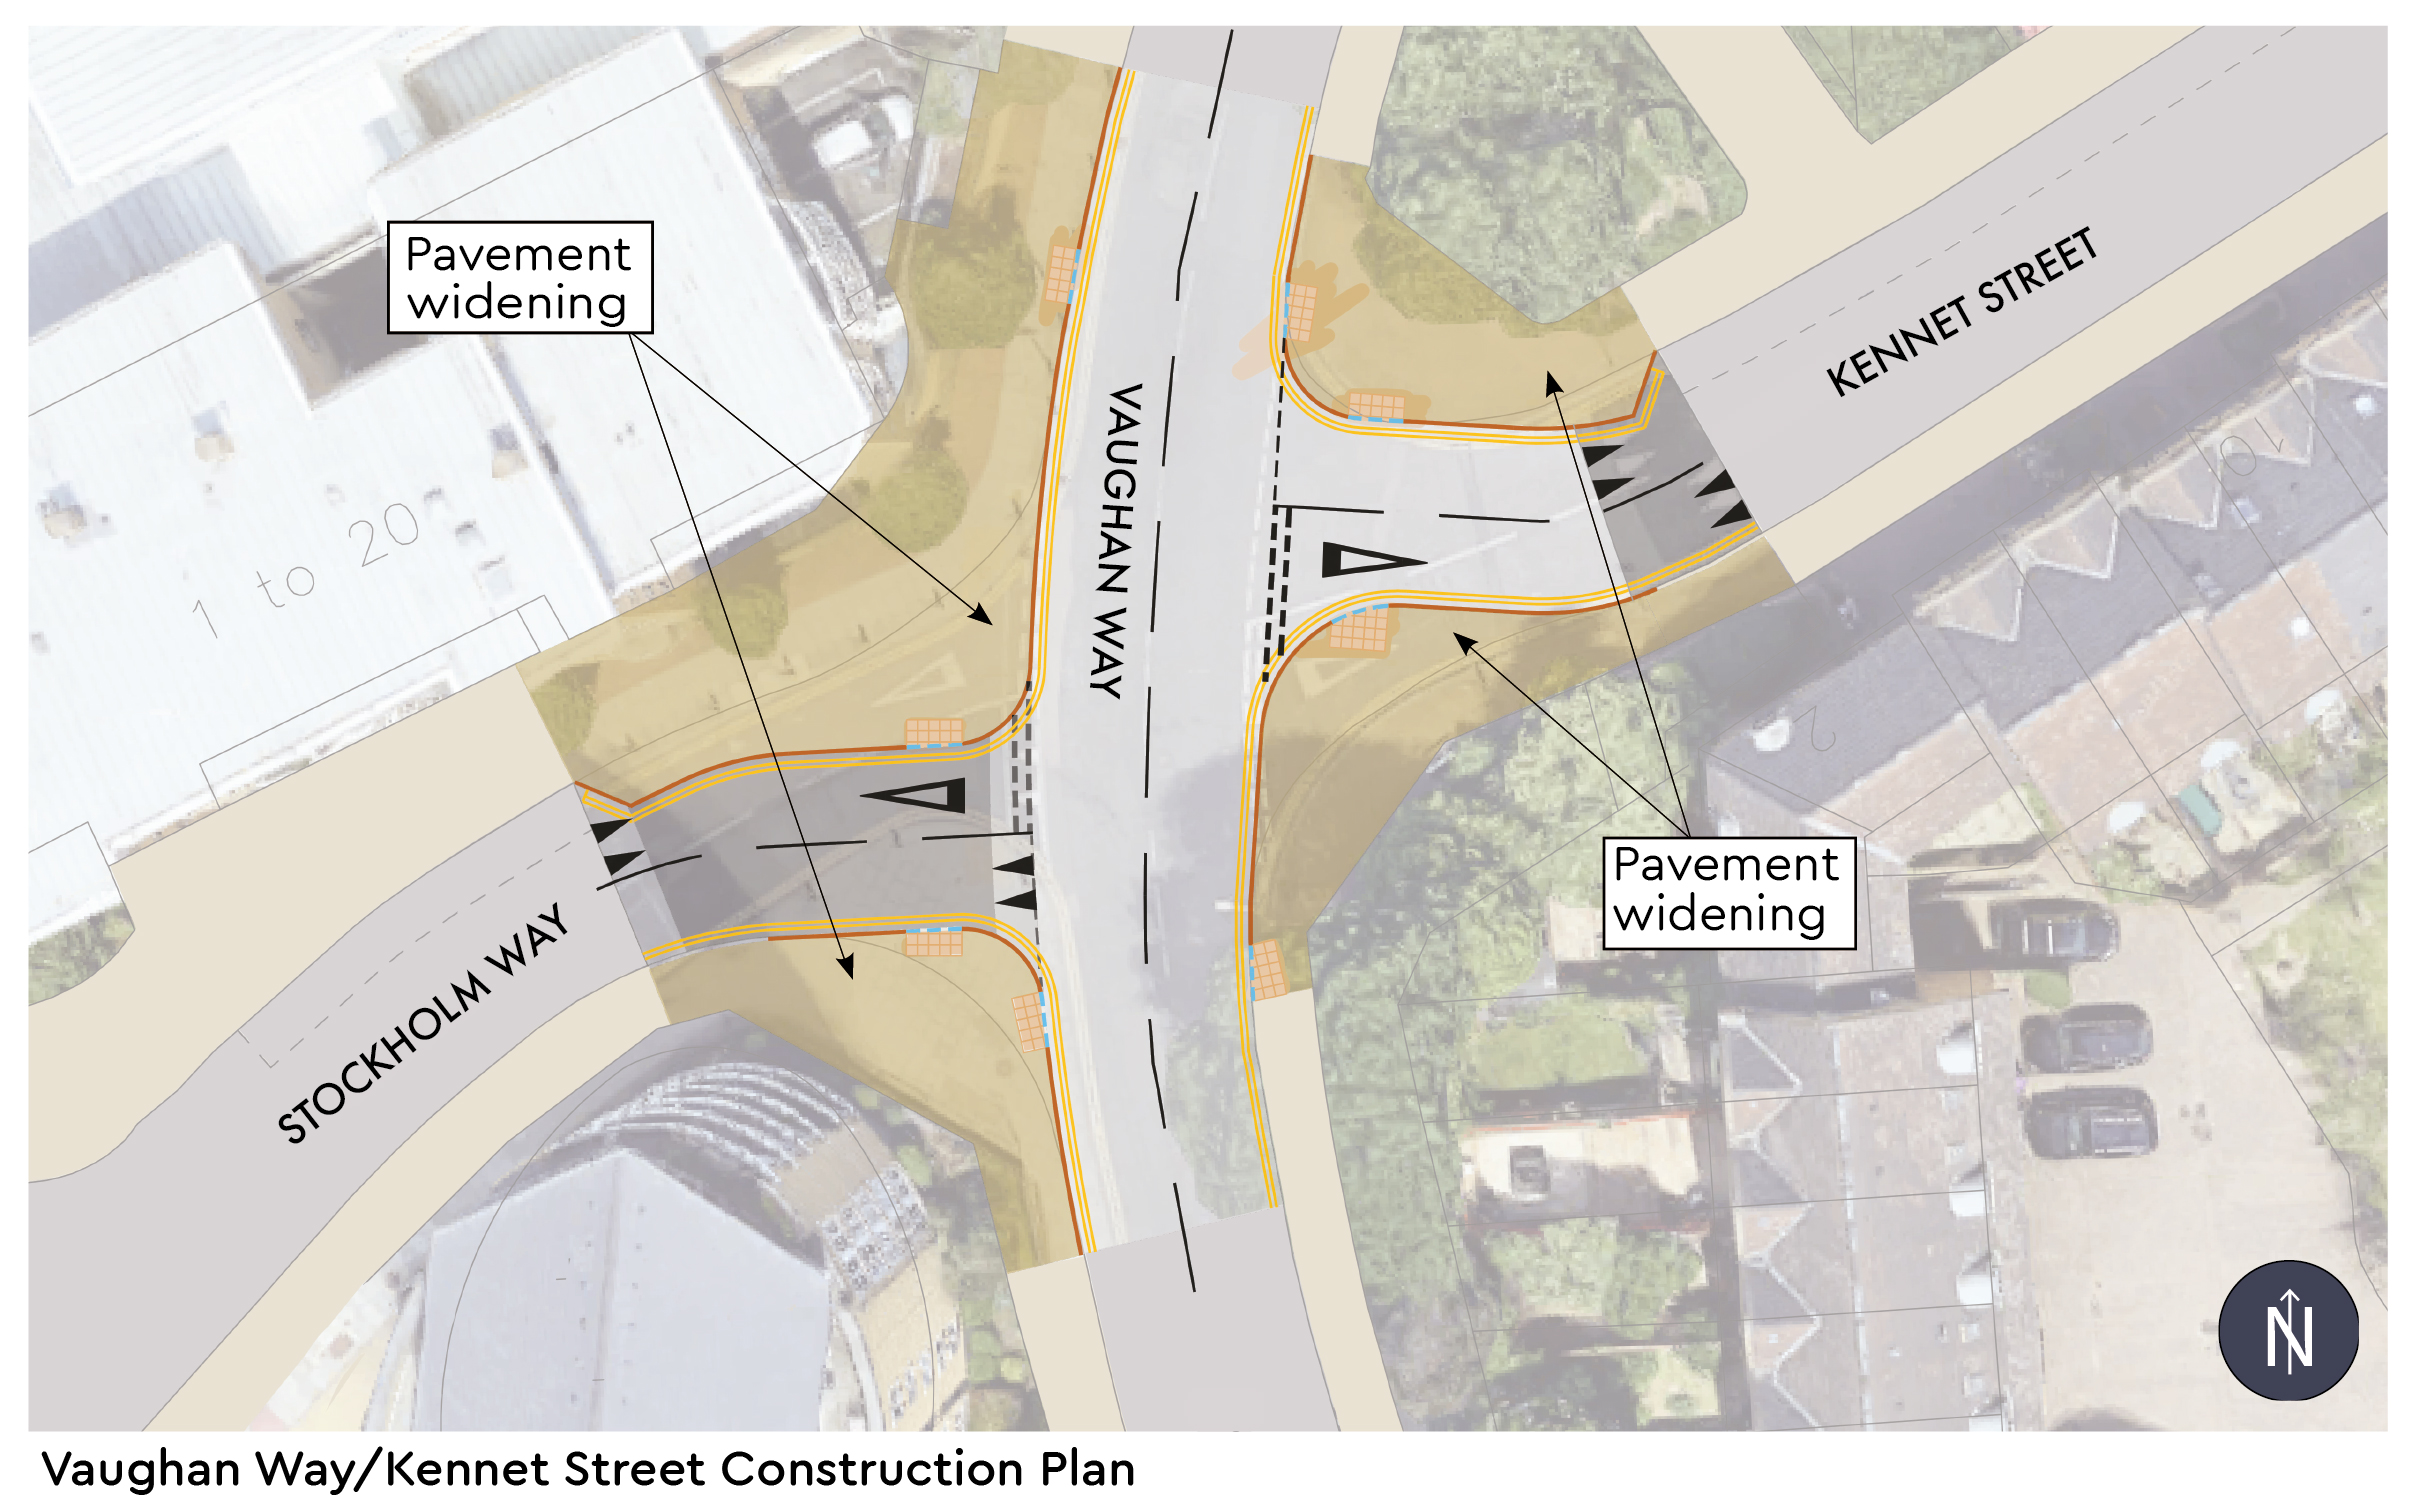 Pavement widening on Vaughan Way/Kennet Street junction